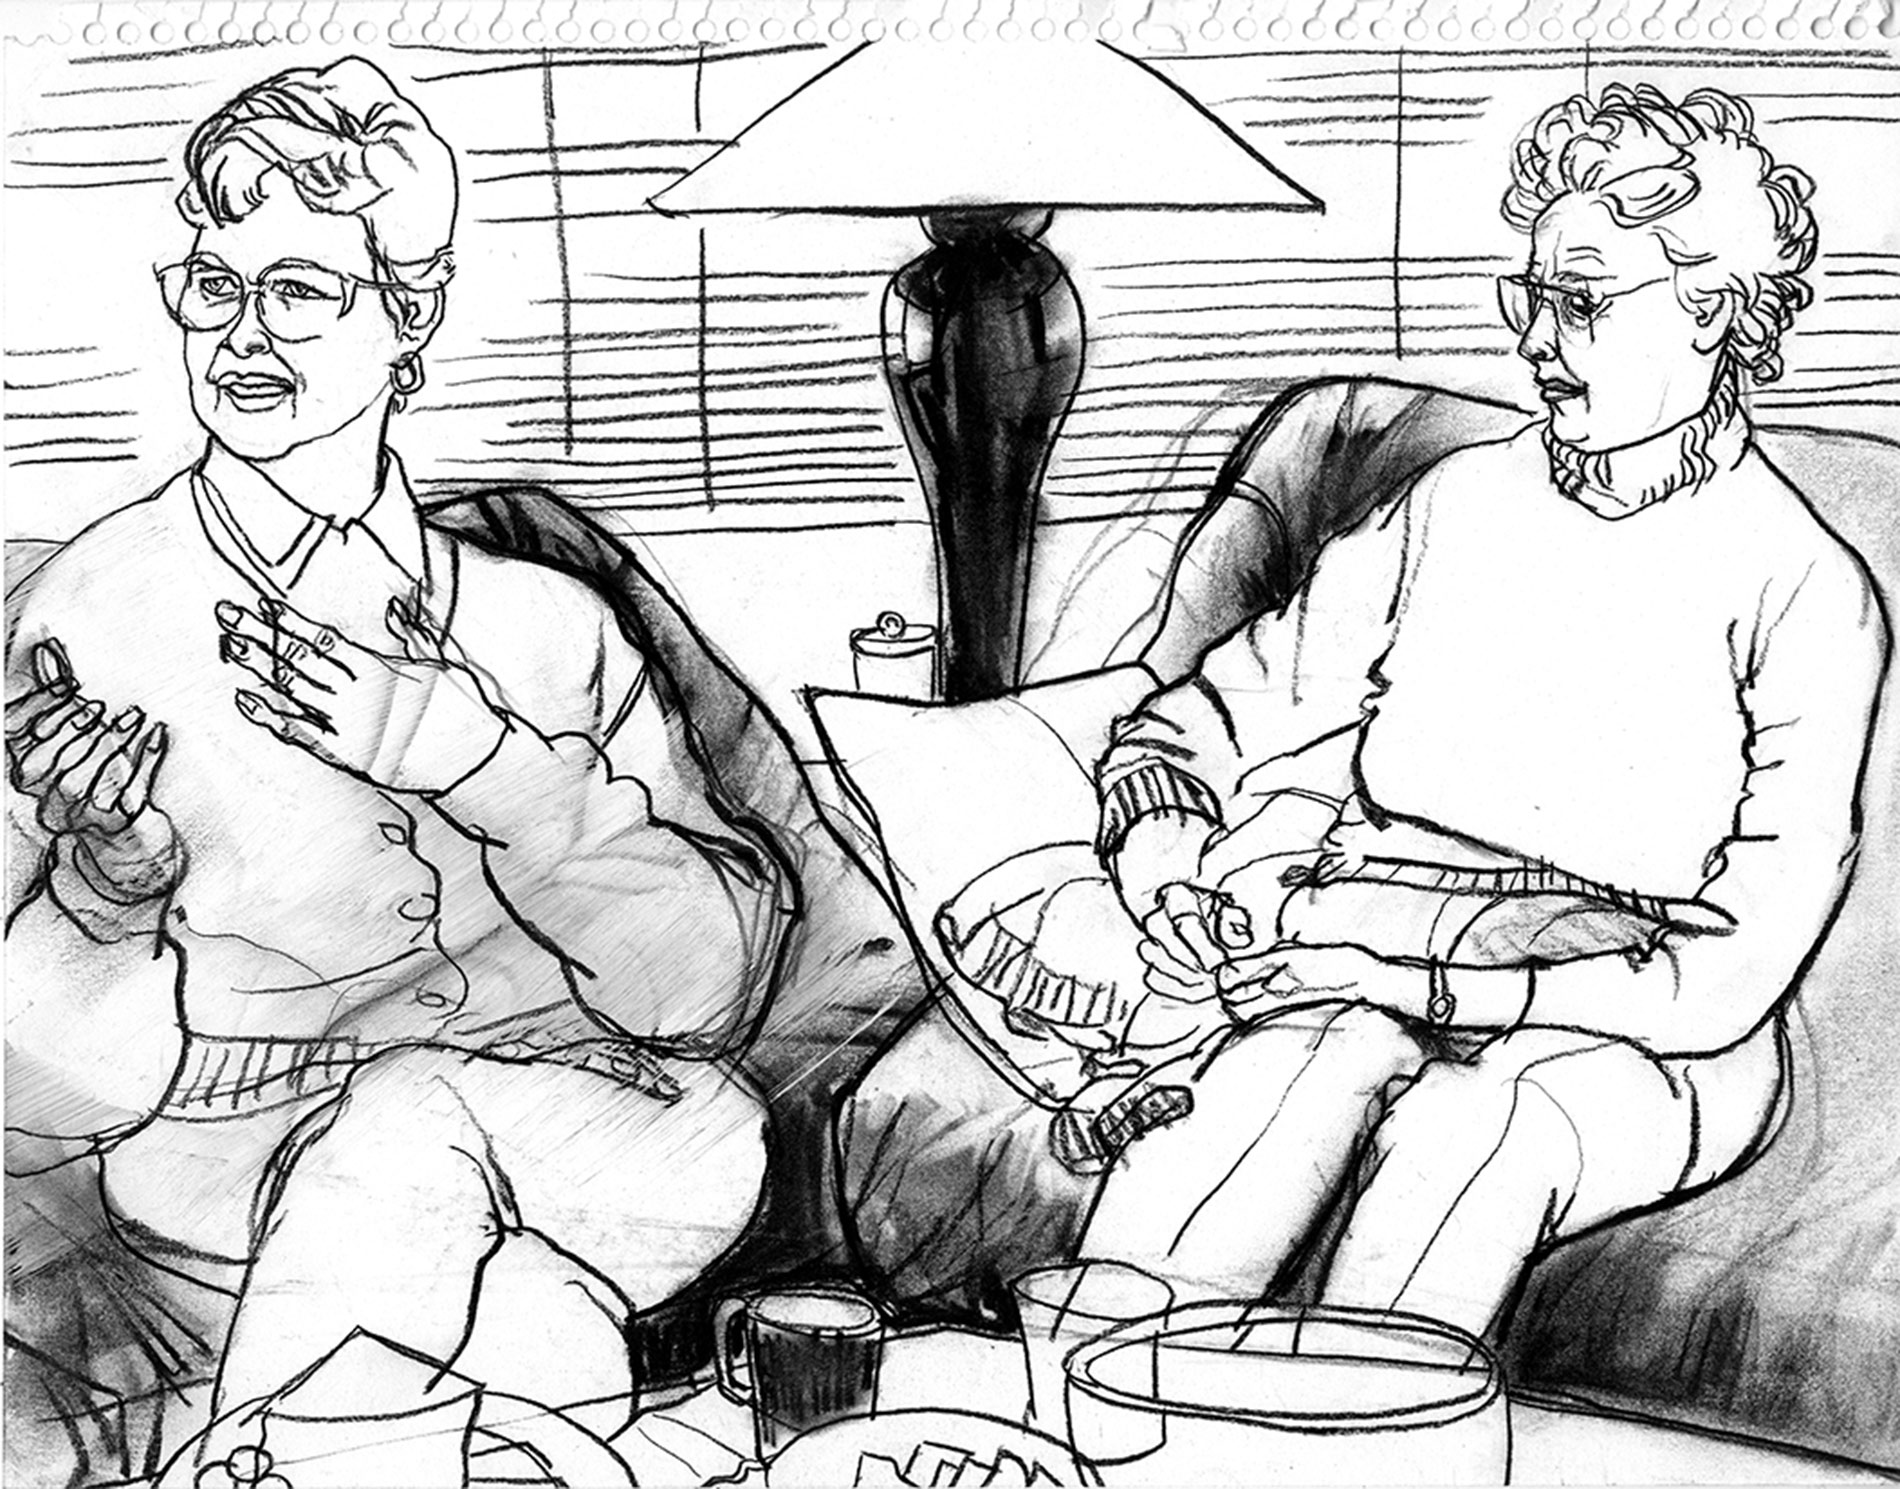 NYT-women-on-couch1.jpg